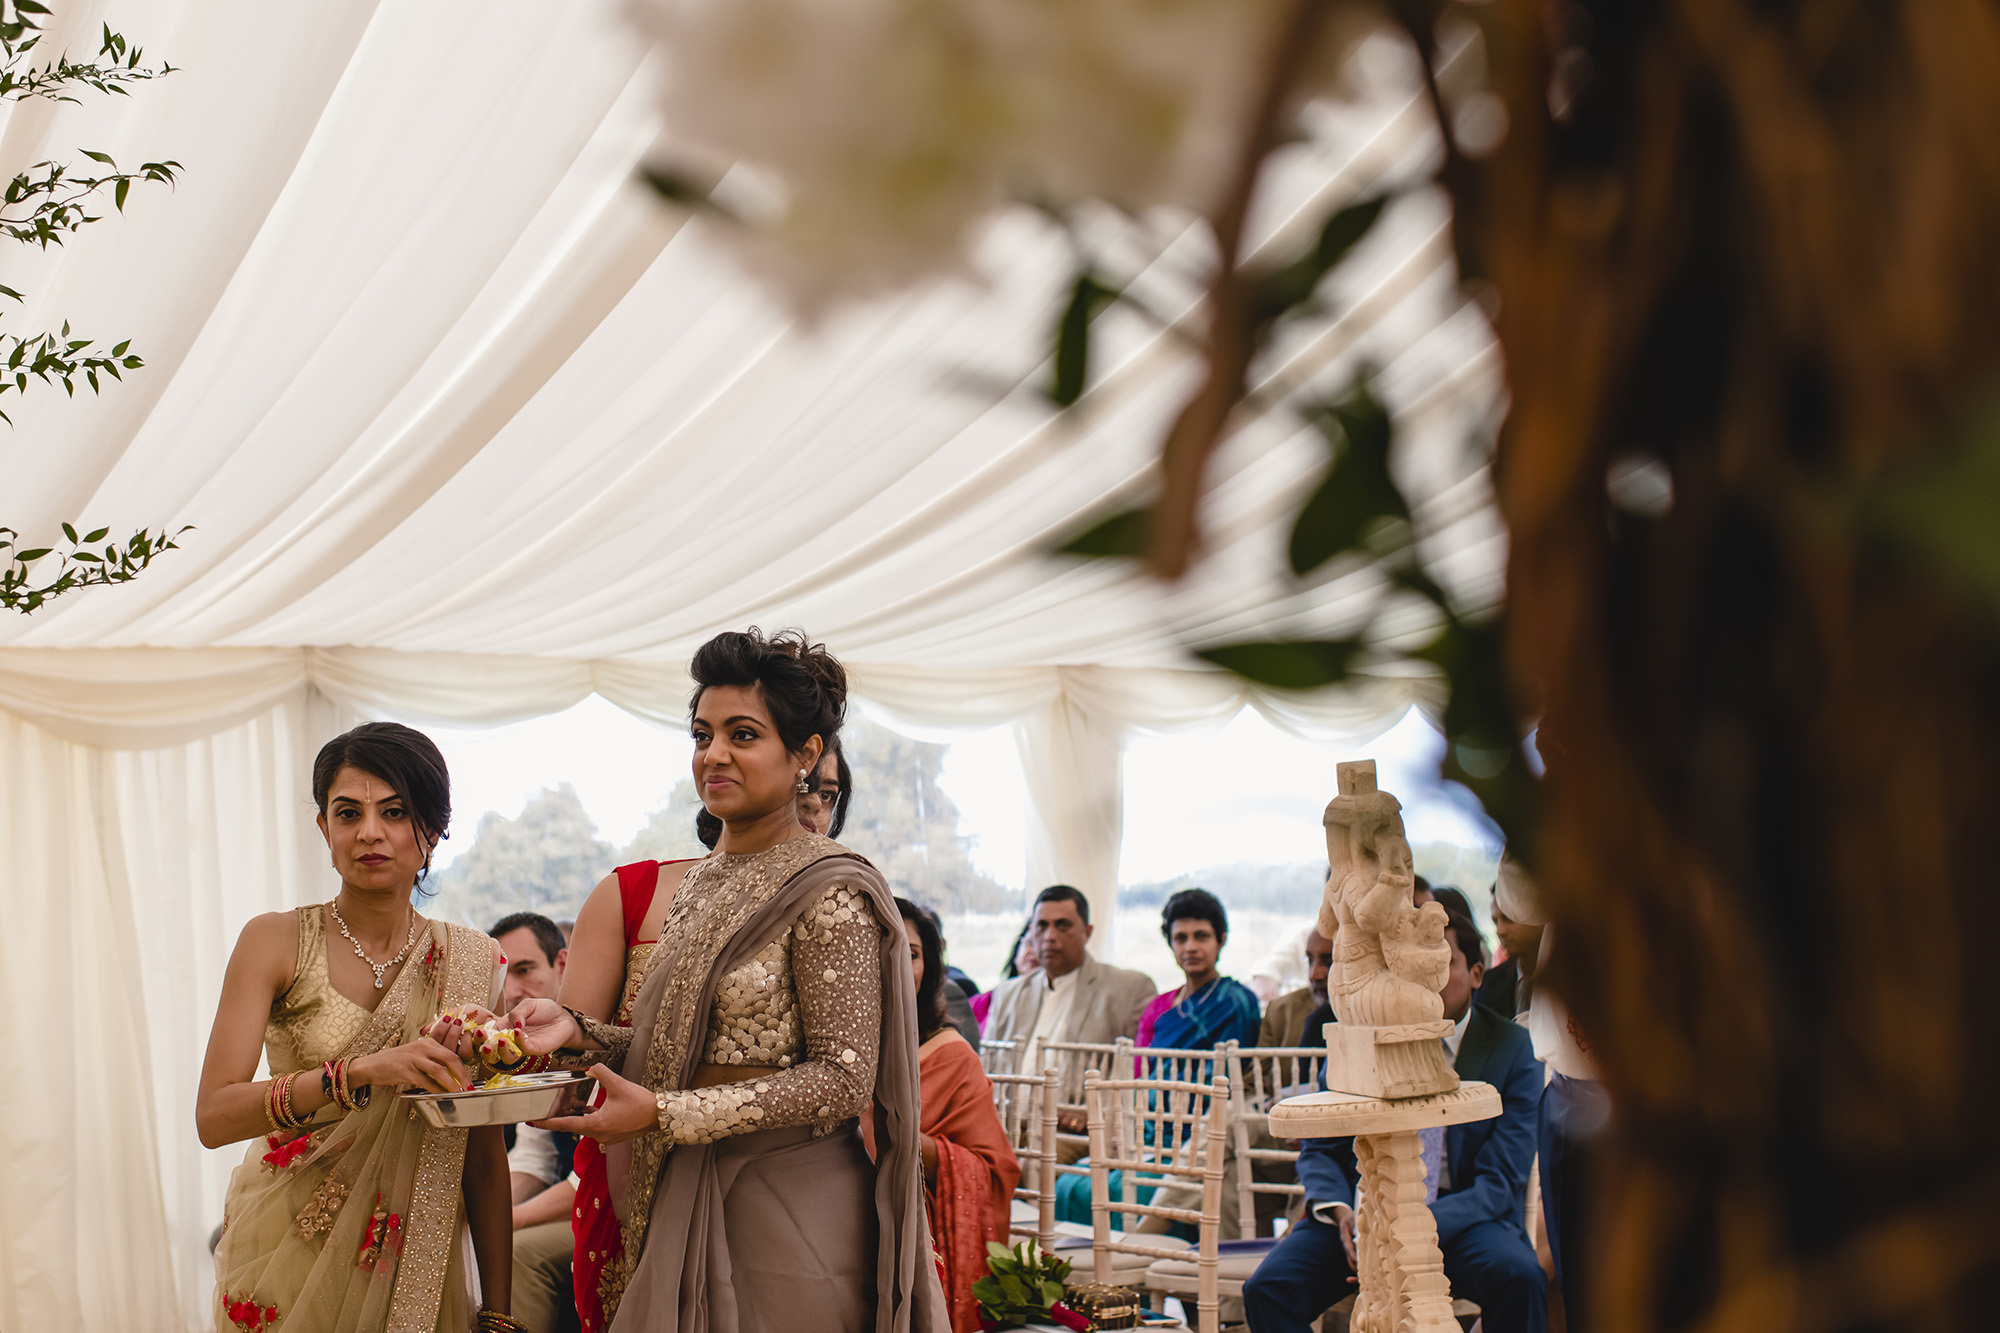 fera during the hindu wedding at stapleford park